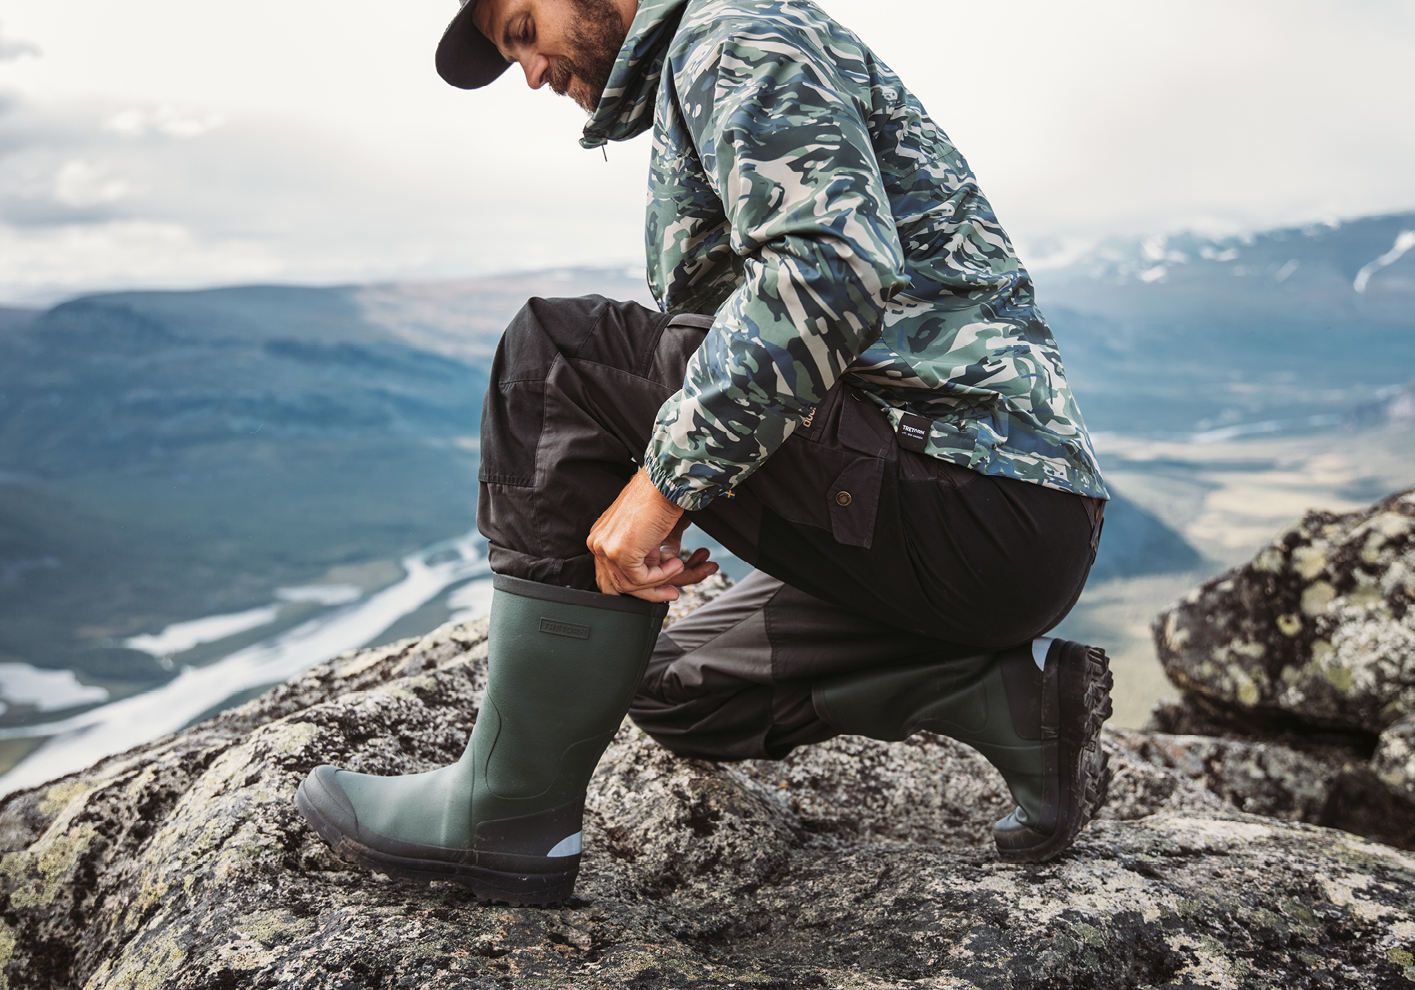 Tretorn has long been known for its expertise in making stylish and functional rubber boots